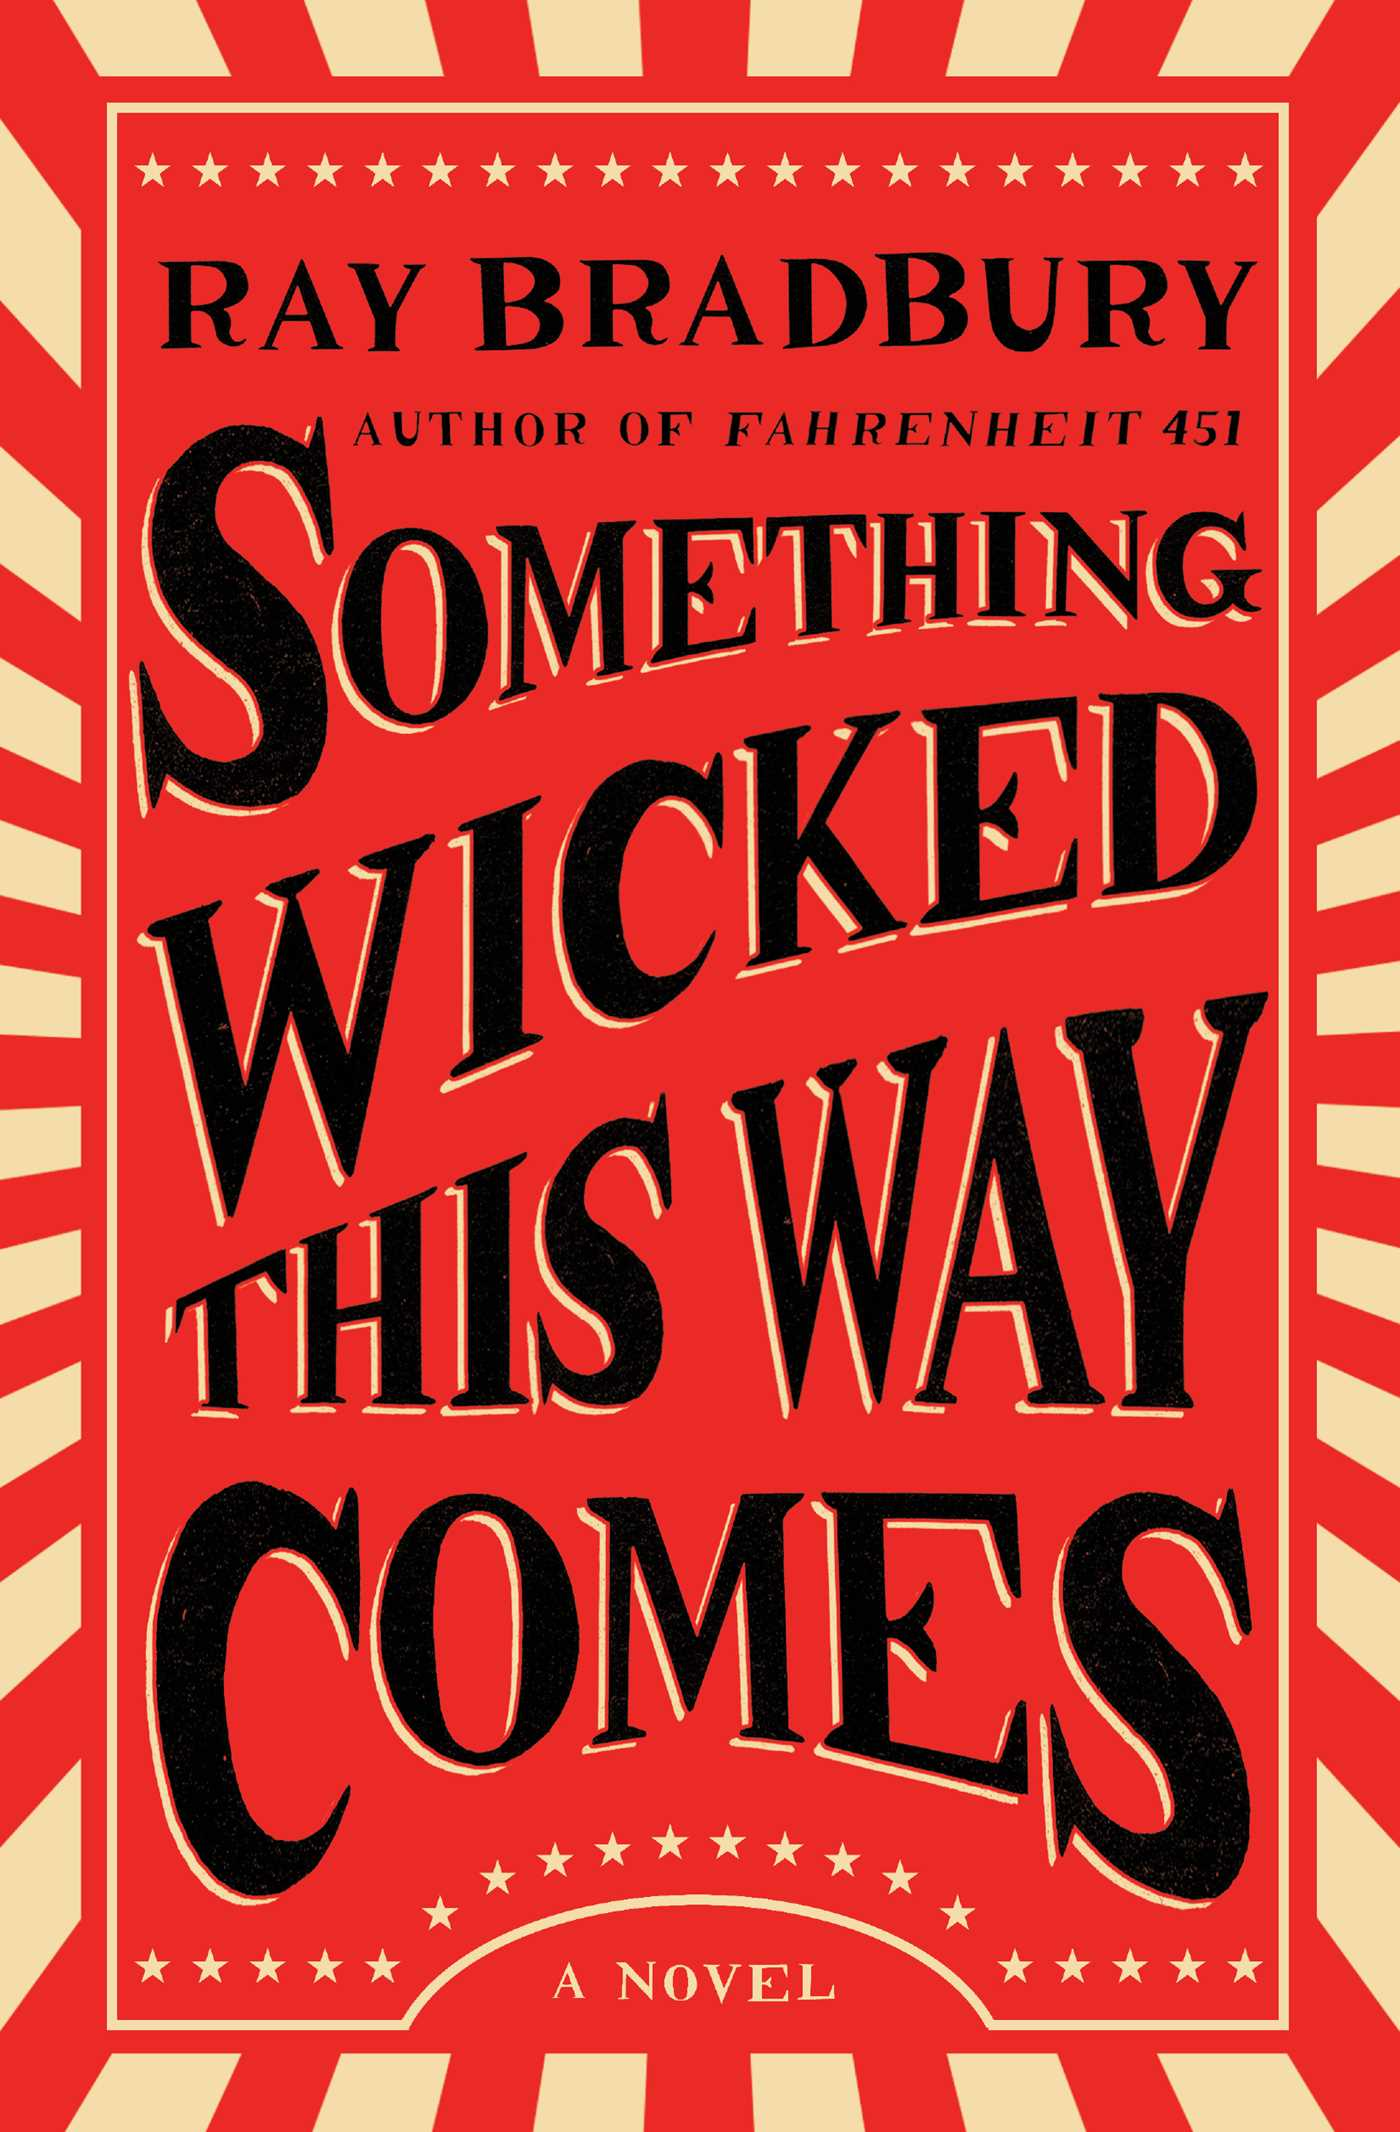 Image result for something wicked this way comes book cover